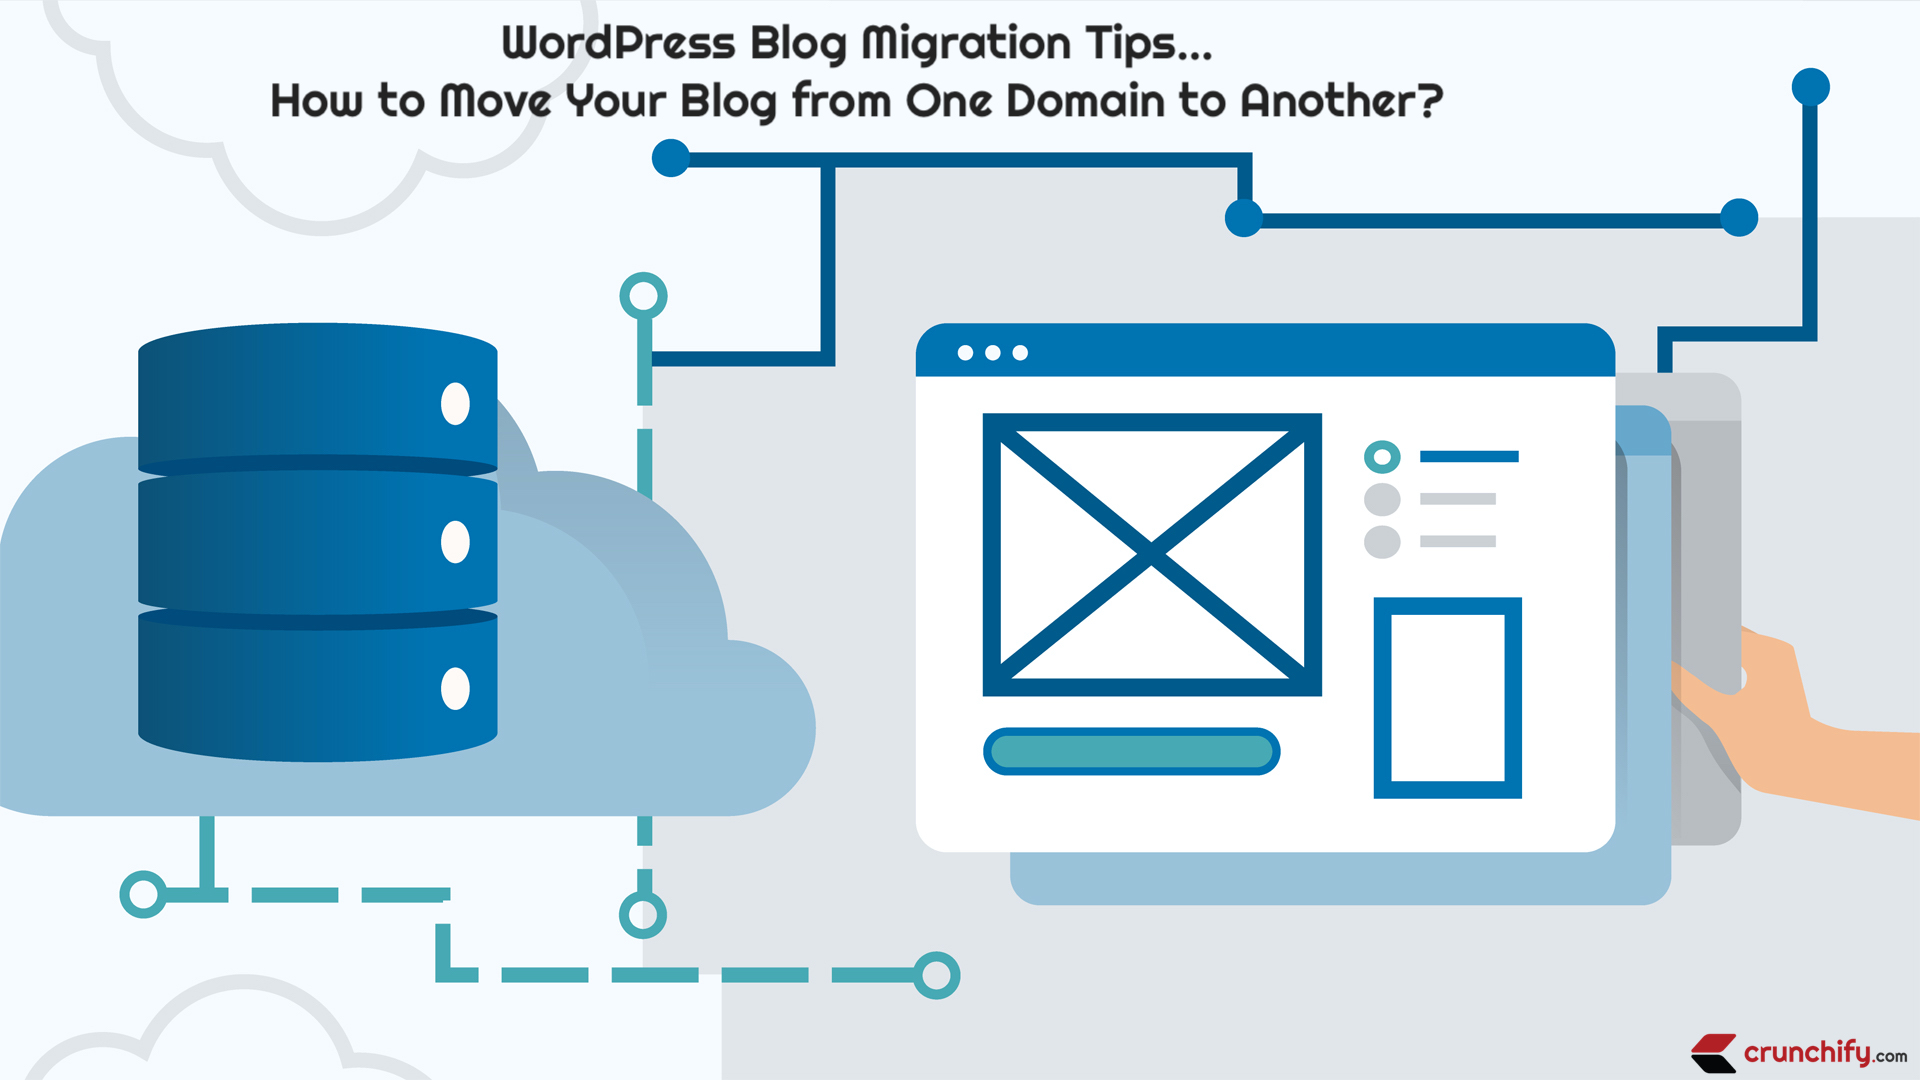 WordPress Blog Migration Tips- How to Move Your Blog from One Domain to Another